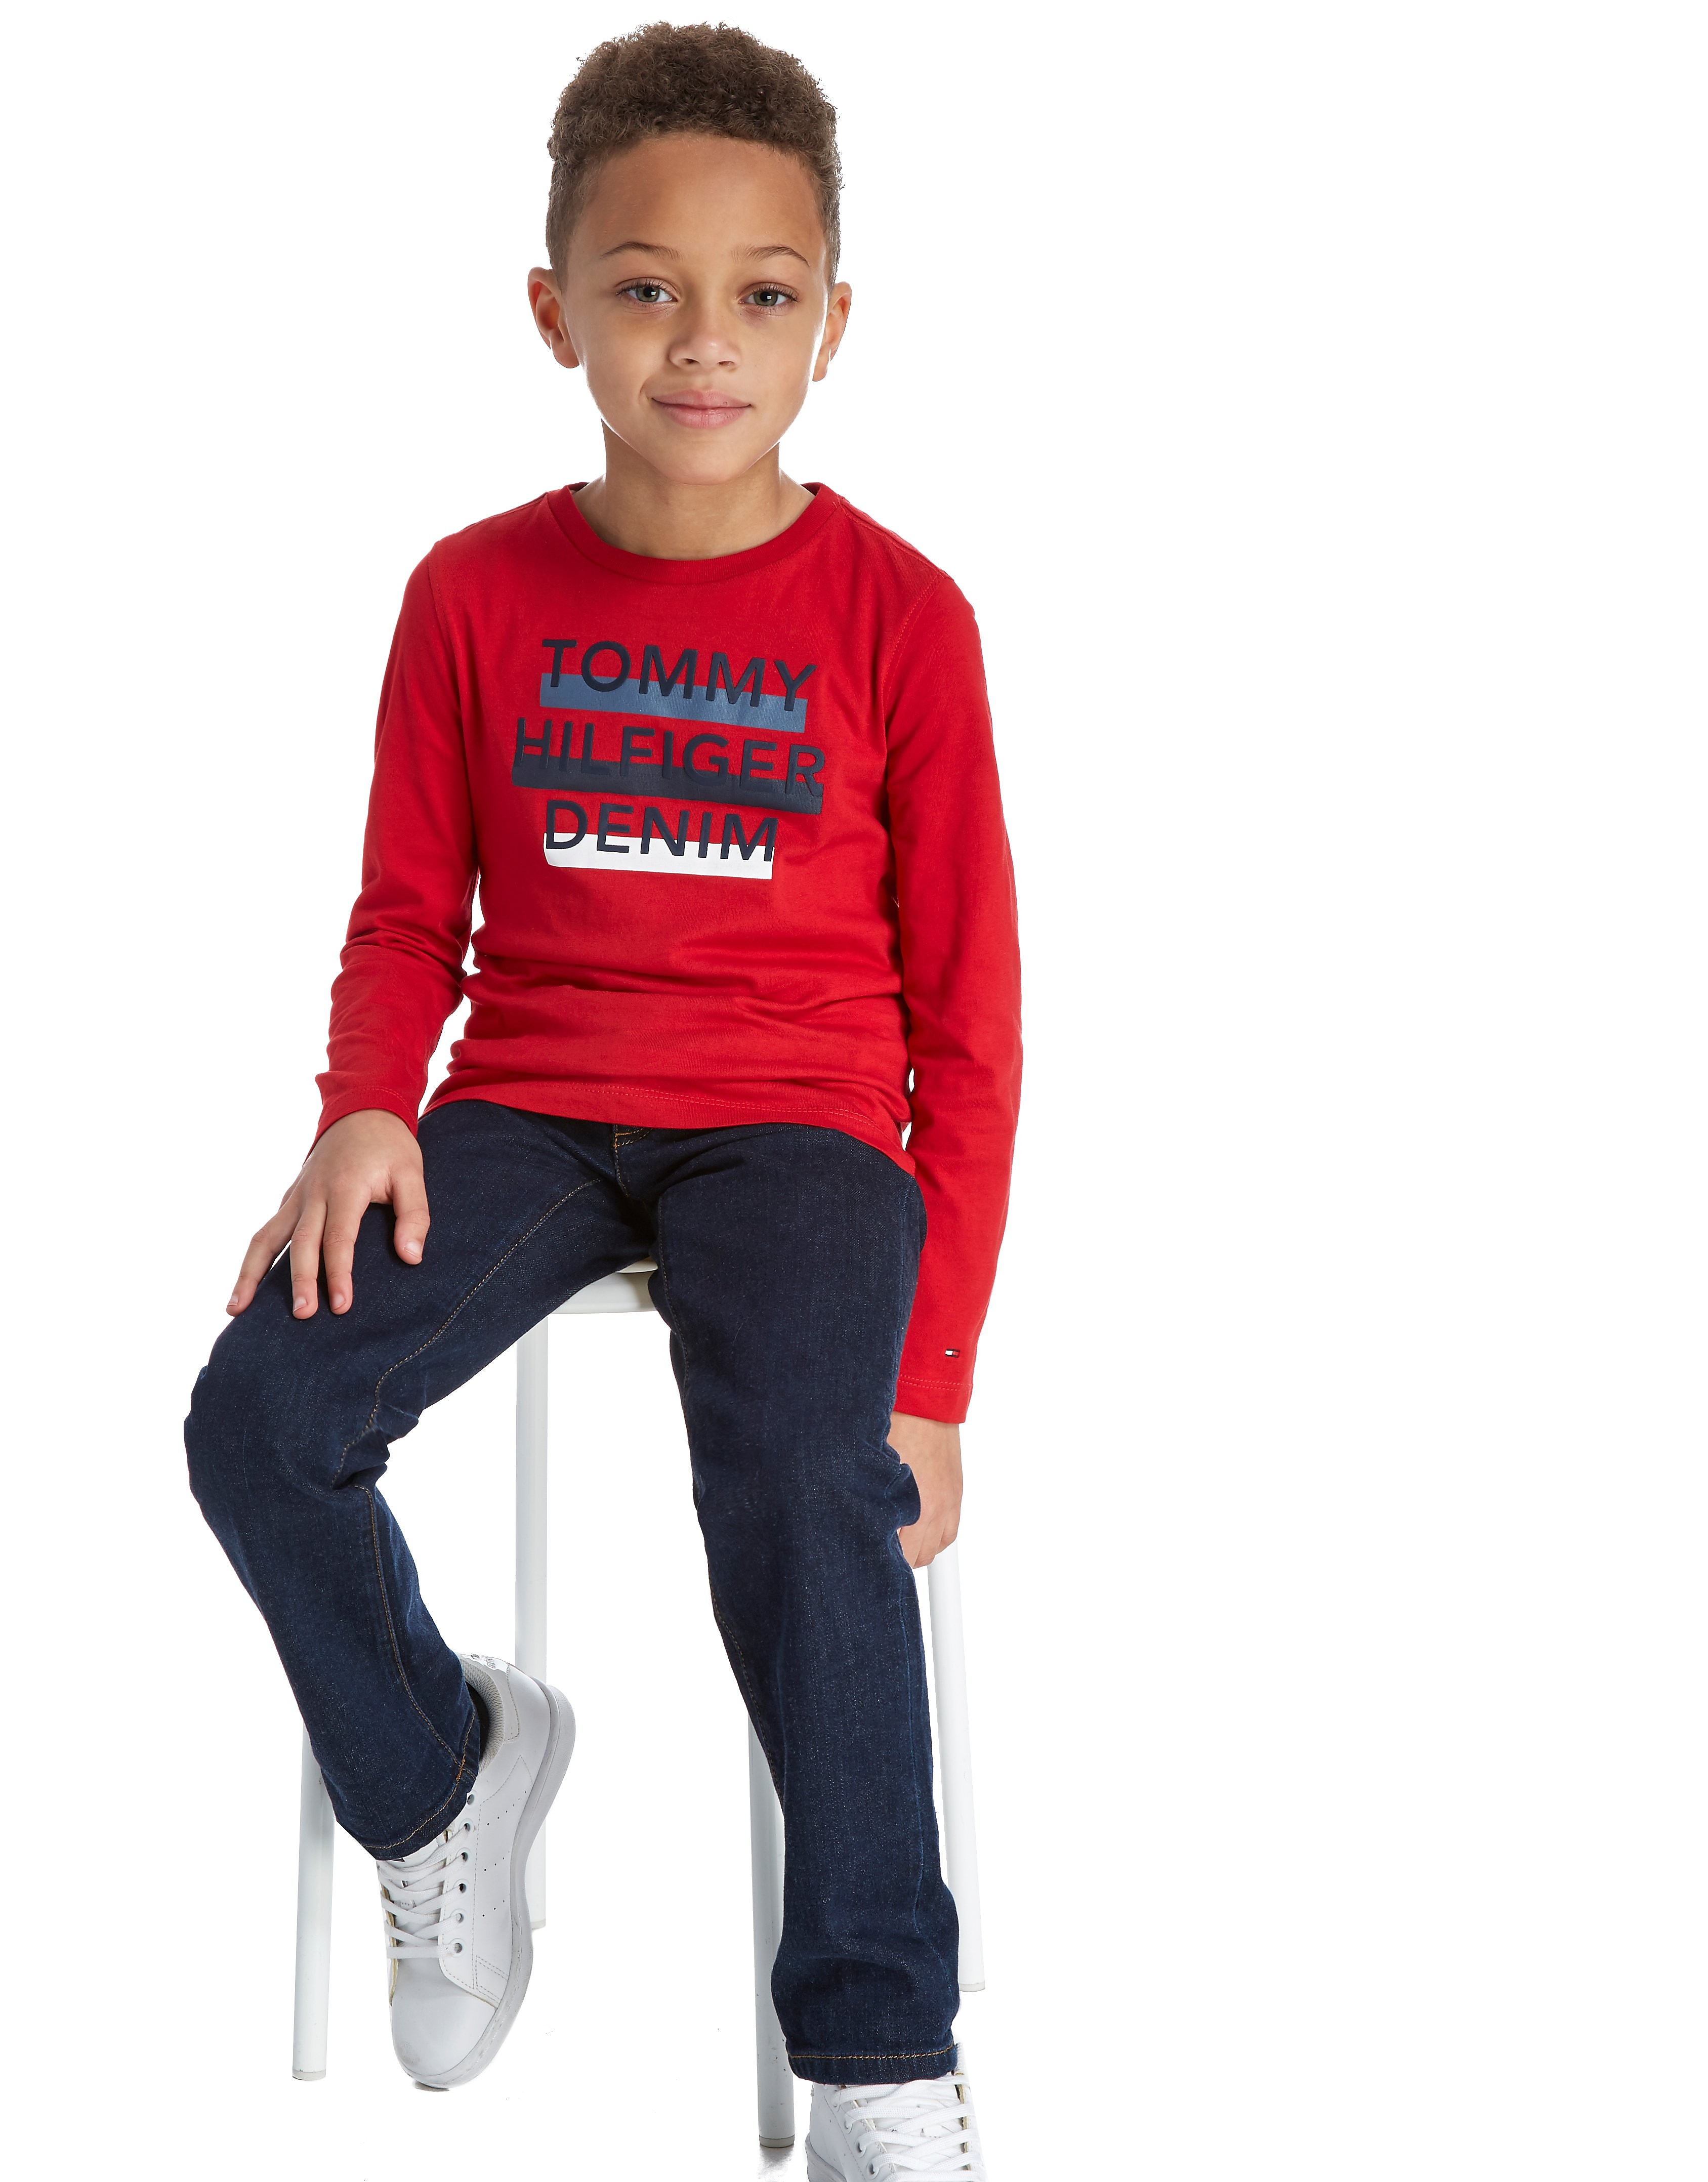 Tommy Hilfiger Long Sleeve Flag T-Shirt Children